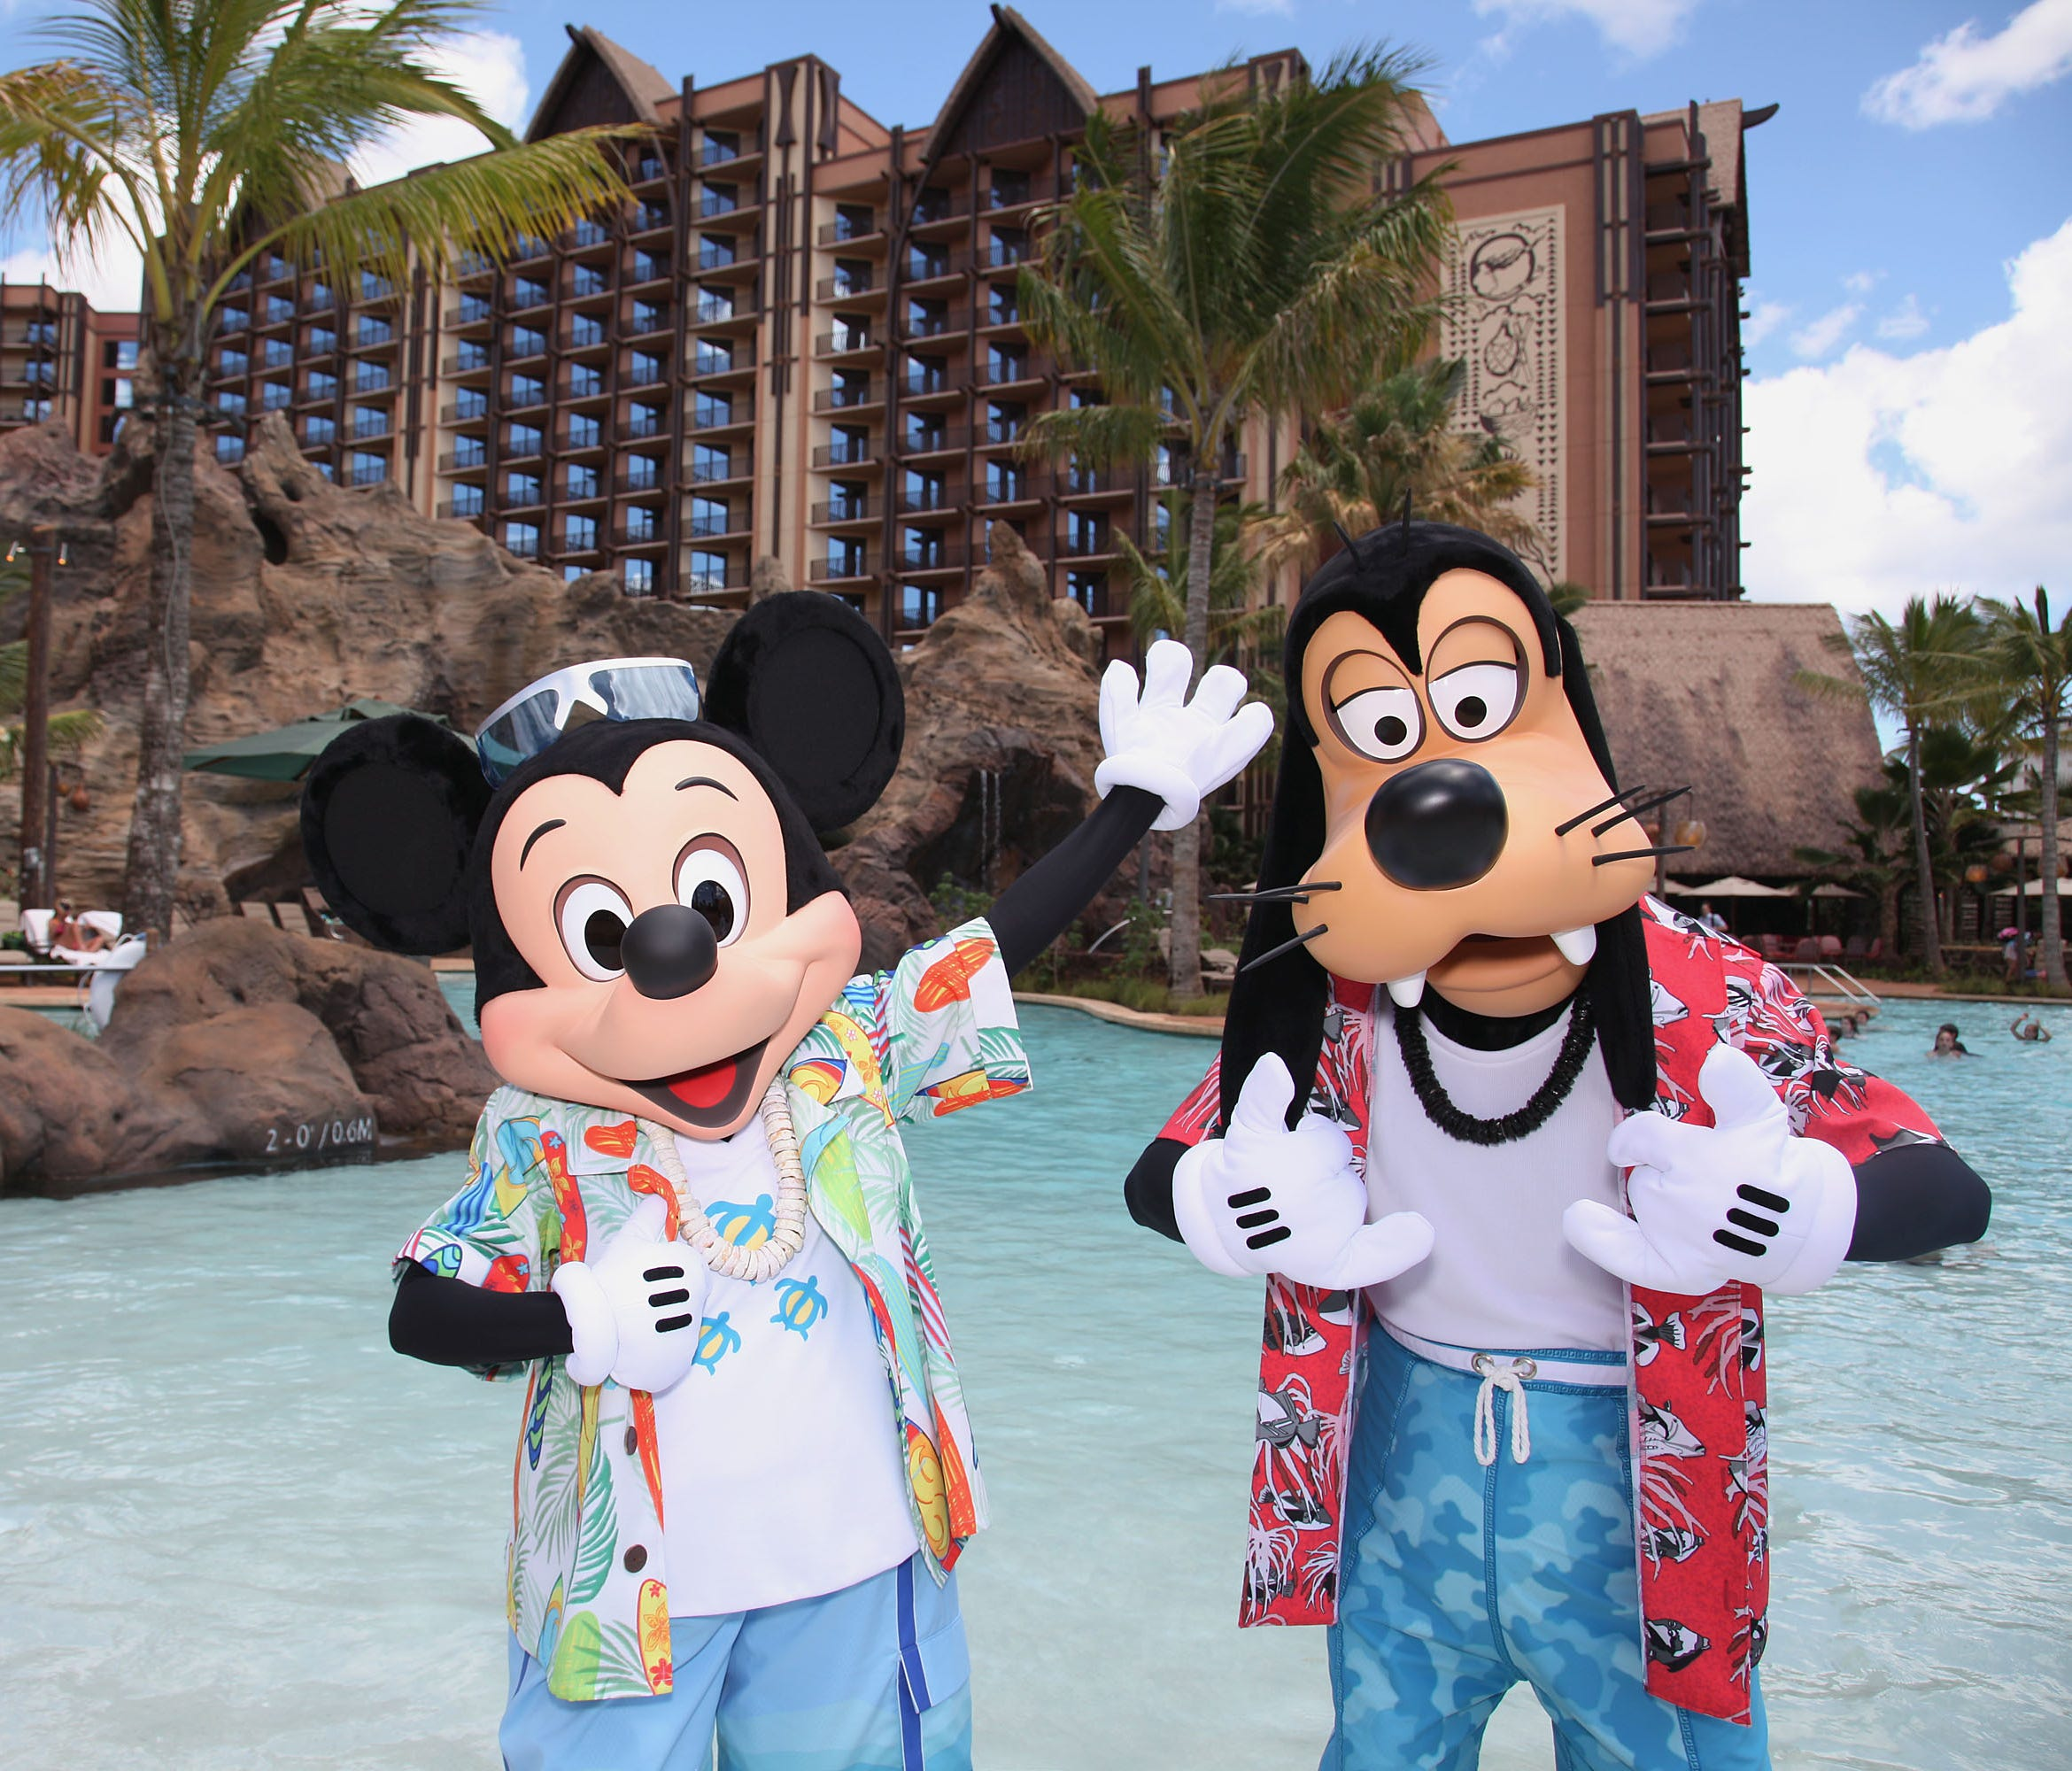 MICKEY MOUSE AND GOOFY VACATION AT AULANI -- With its fun recreation features and restaurants, its comfortable rooms, and its combination of Disney magic with Hawaiian beauty, tradition and relaxation, Aulani, a Disney Resort & Spa in HawaiÔi, offers